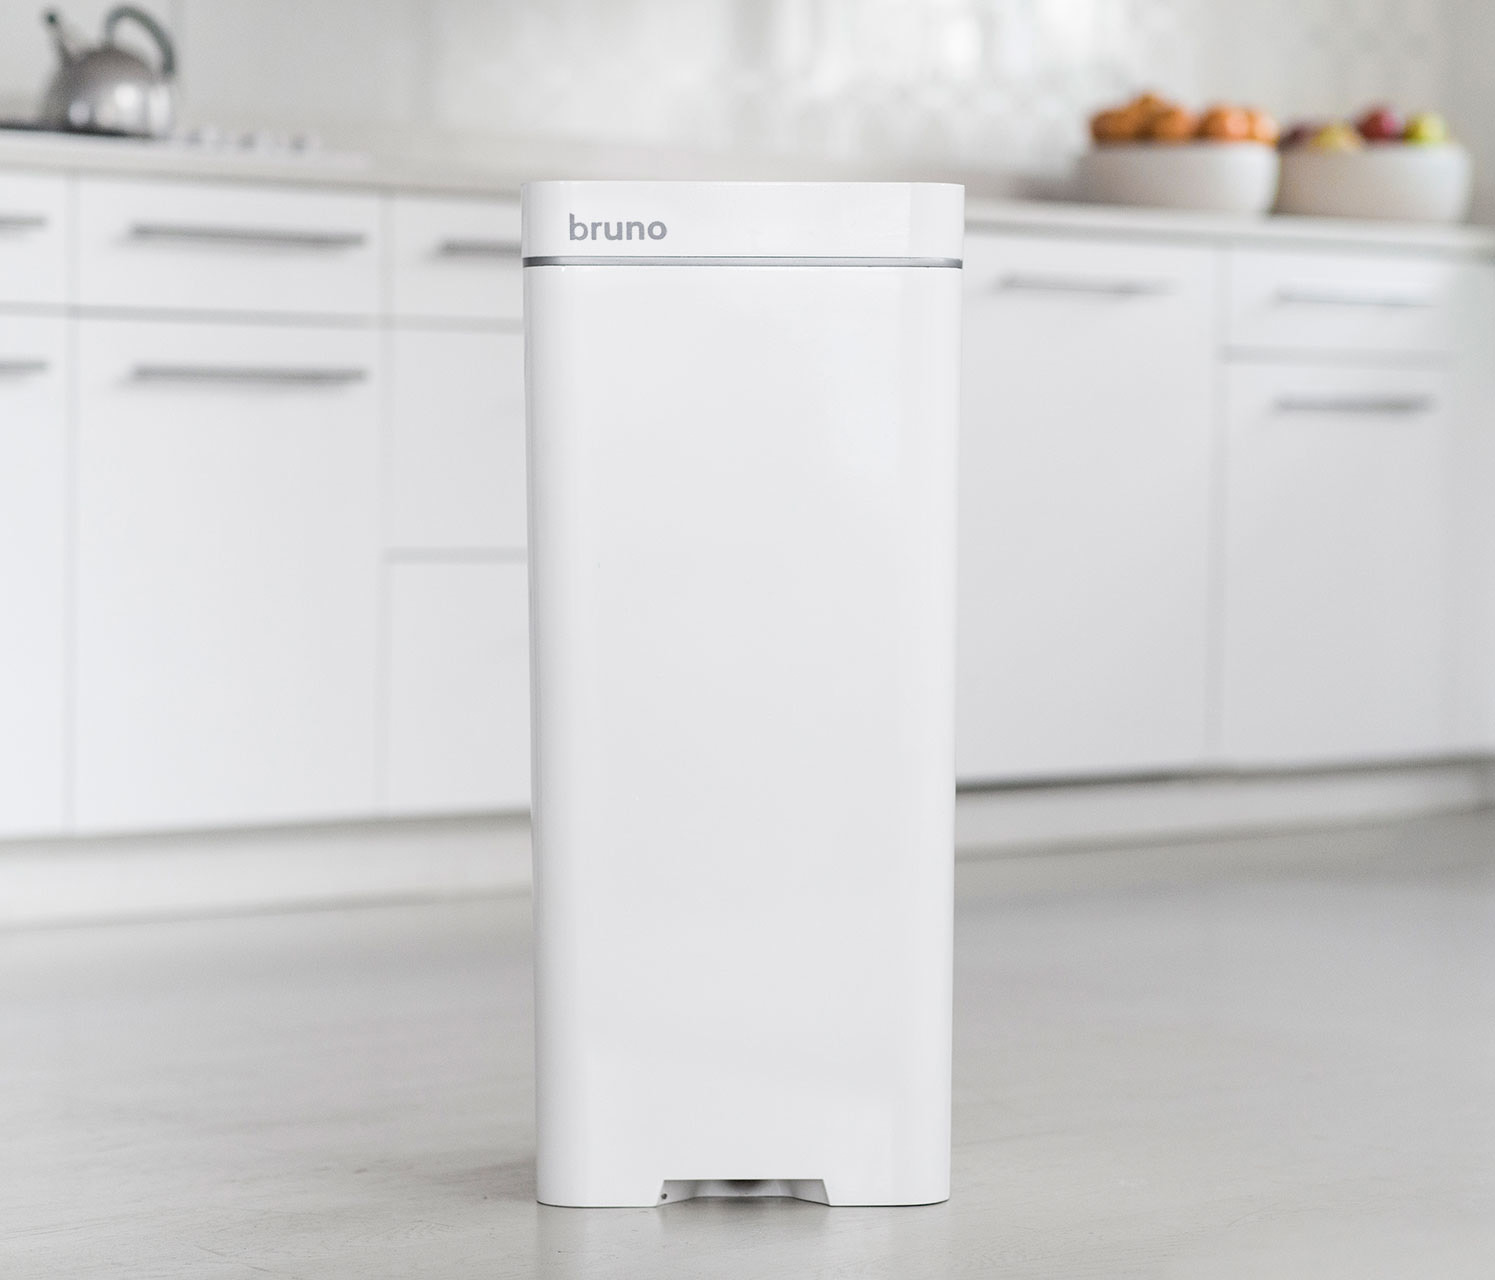 Gentil Bruno: The Smart Kitchen Trashcan Reminds You When To Take Out The Trash ...